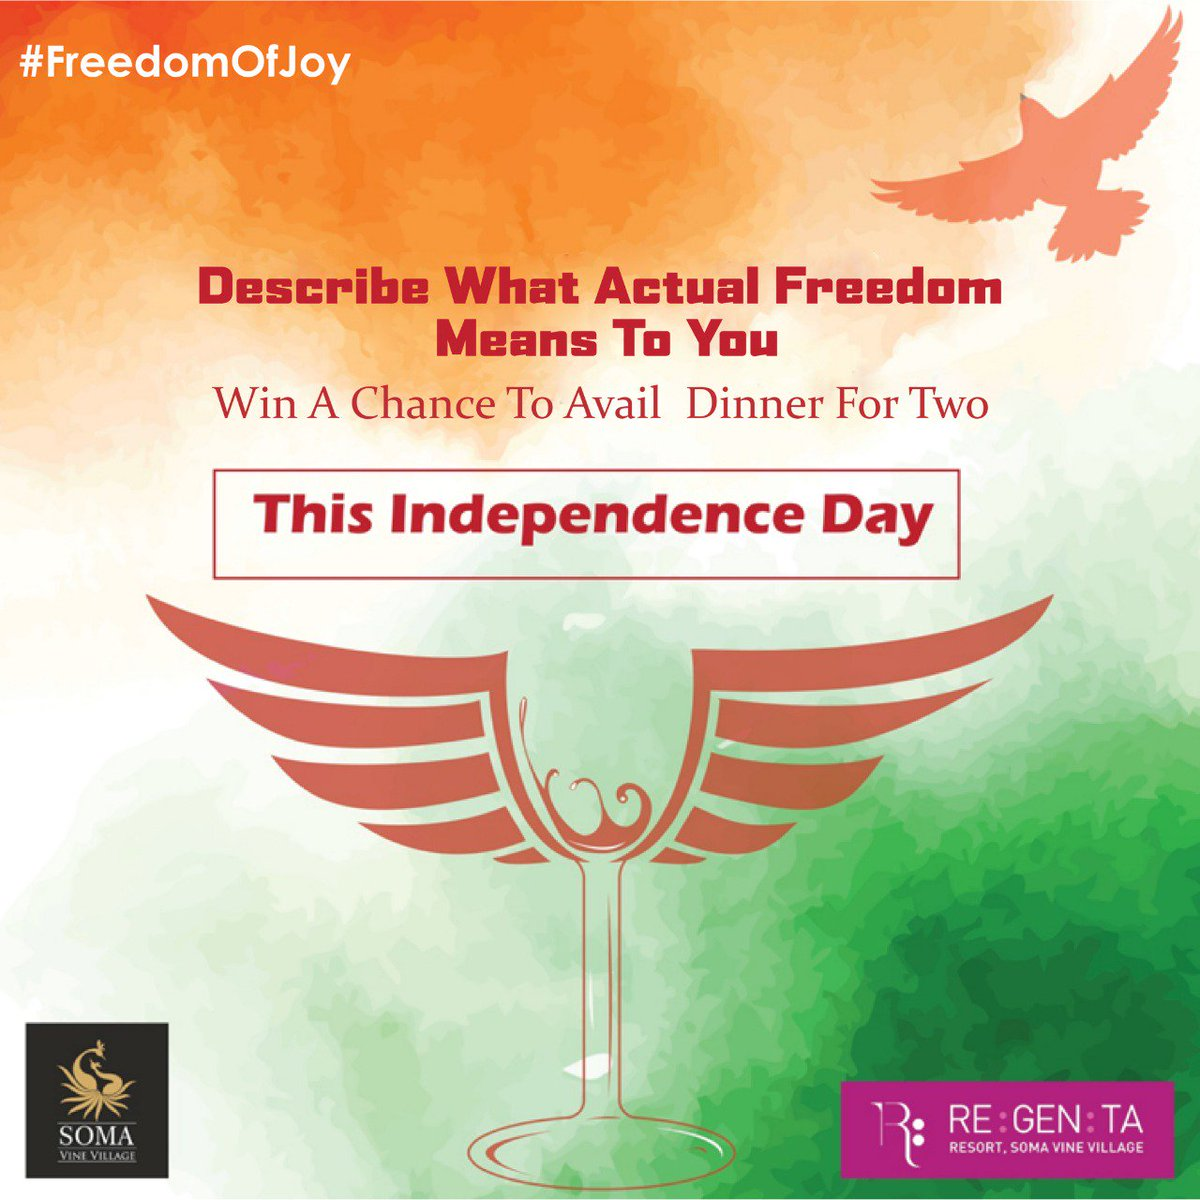 #freedomofJoy This independence celebrate the #IndependenceDay2018 with us in simply 2 steps 1. Describe what actual freedom means according to you 2. Follow and #RETWEEET  The best description will get a chance to win a dinner for two @SomaVineVillage  #ContestAlert #participate<br>http://pic.twitter.com/Cv35Pdb9BG